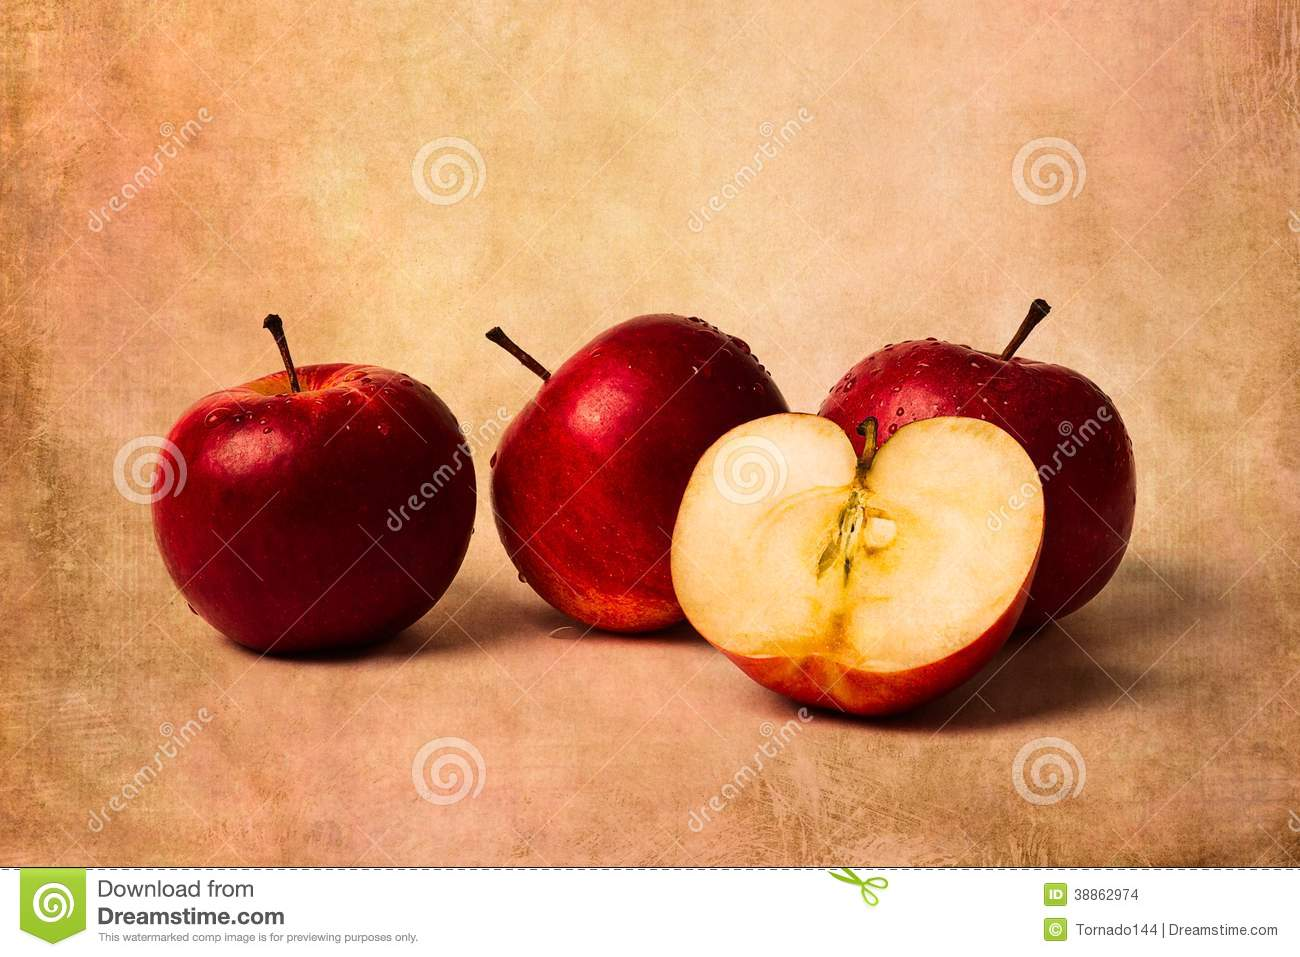 how to break an apple in half